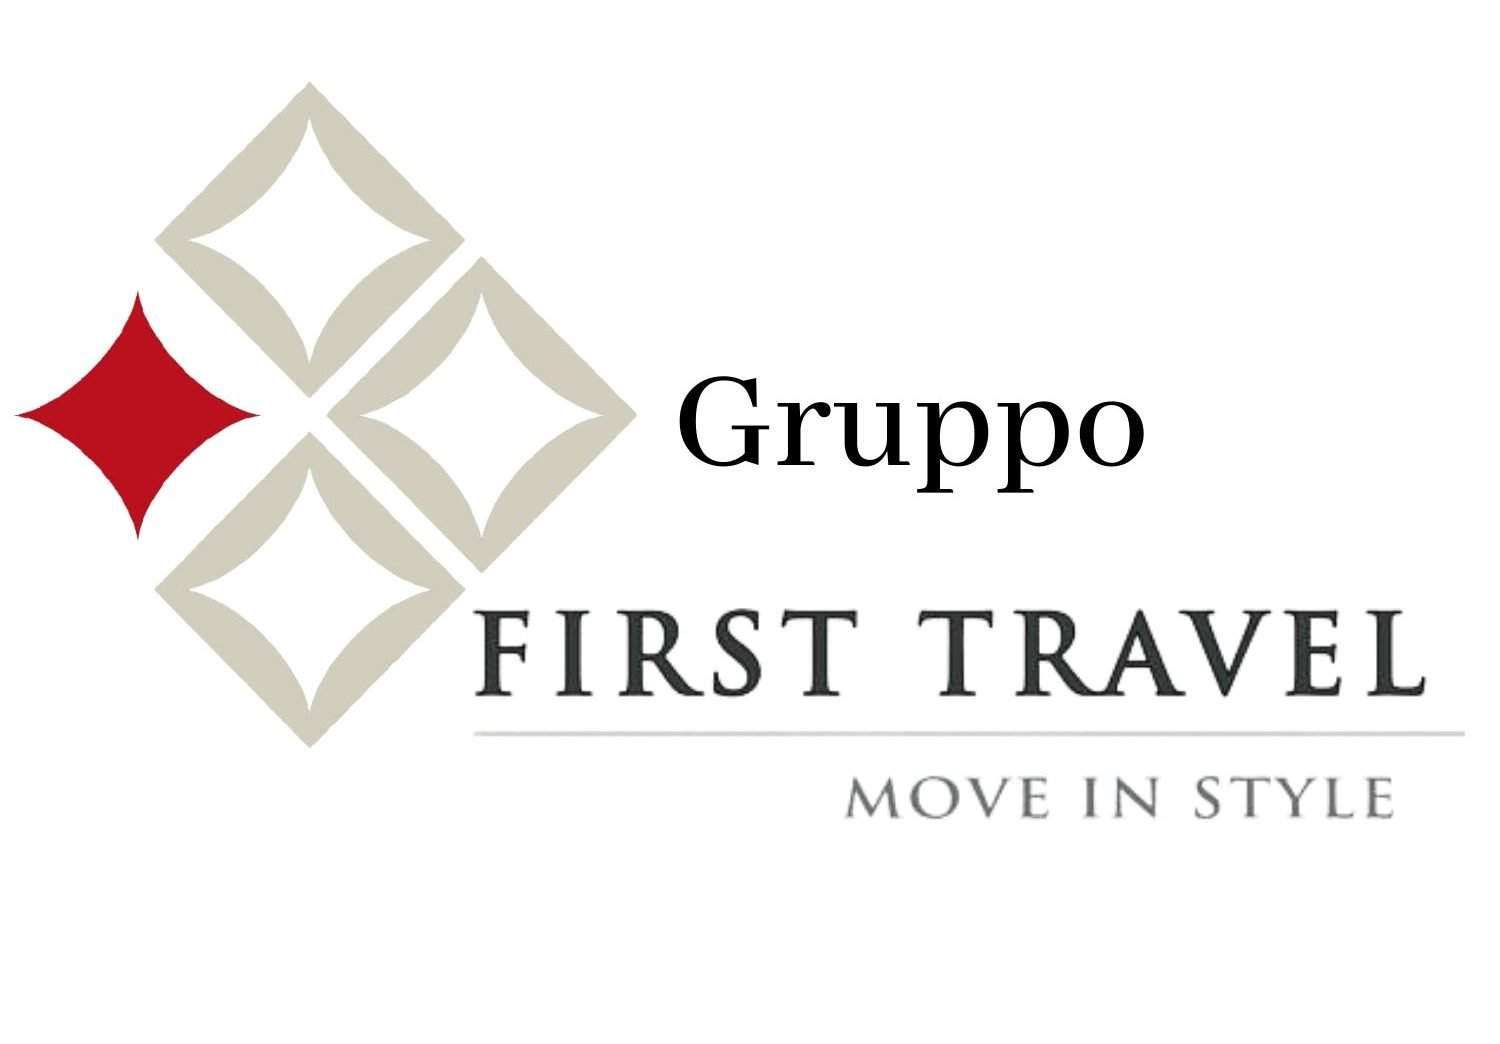 Gruppo First Travel